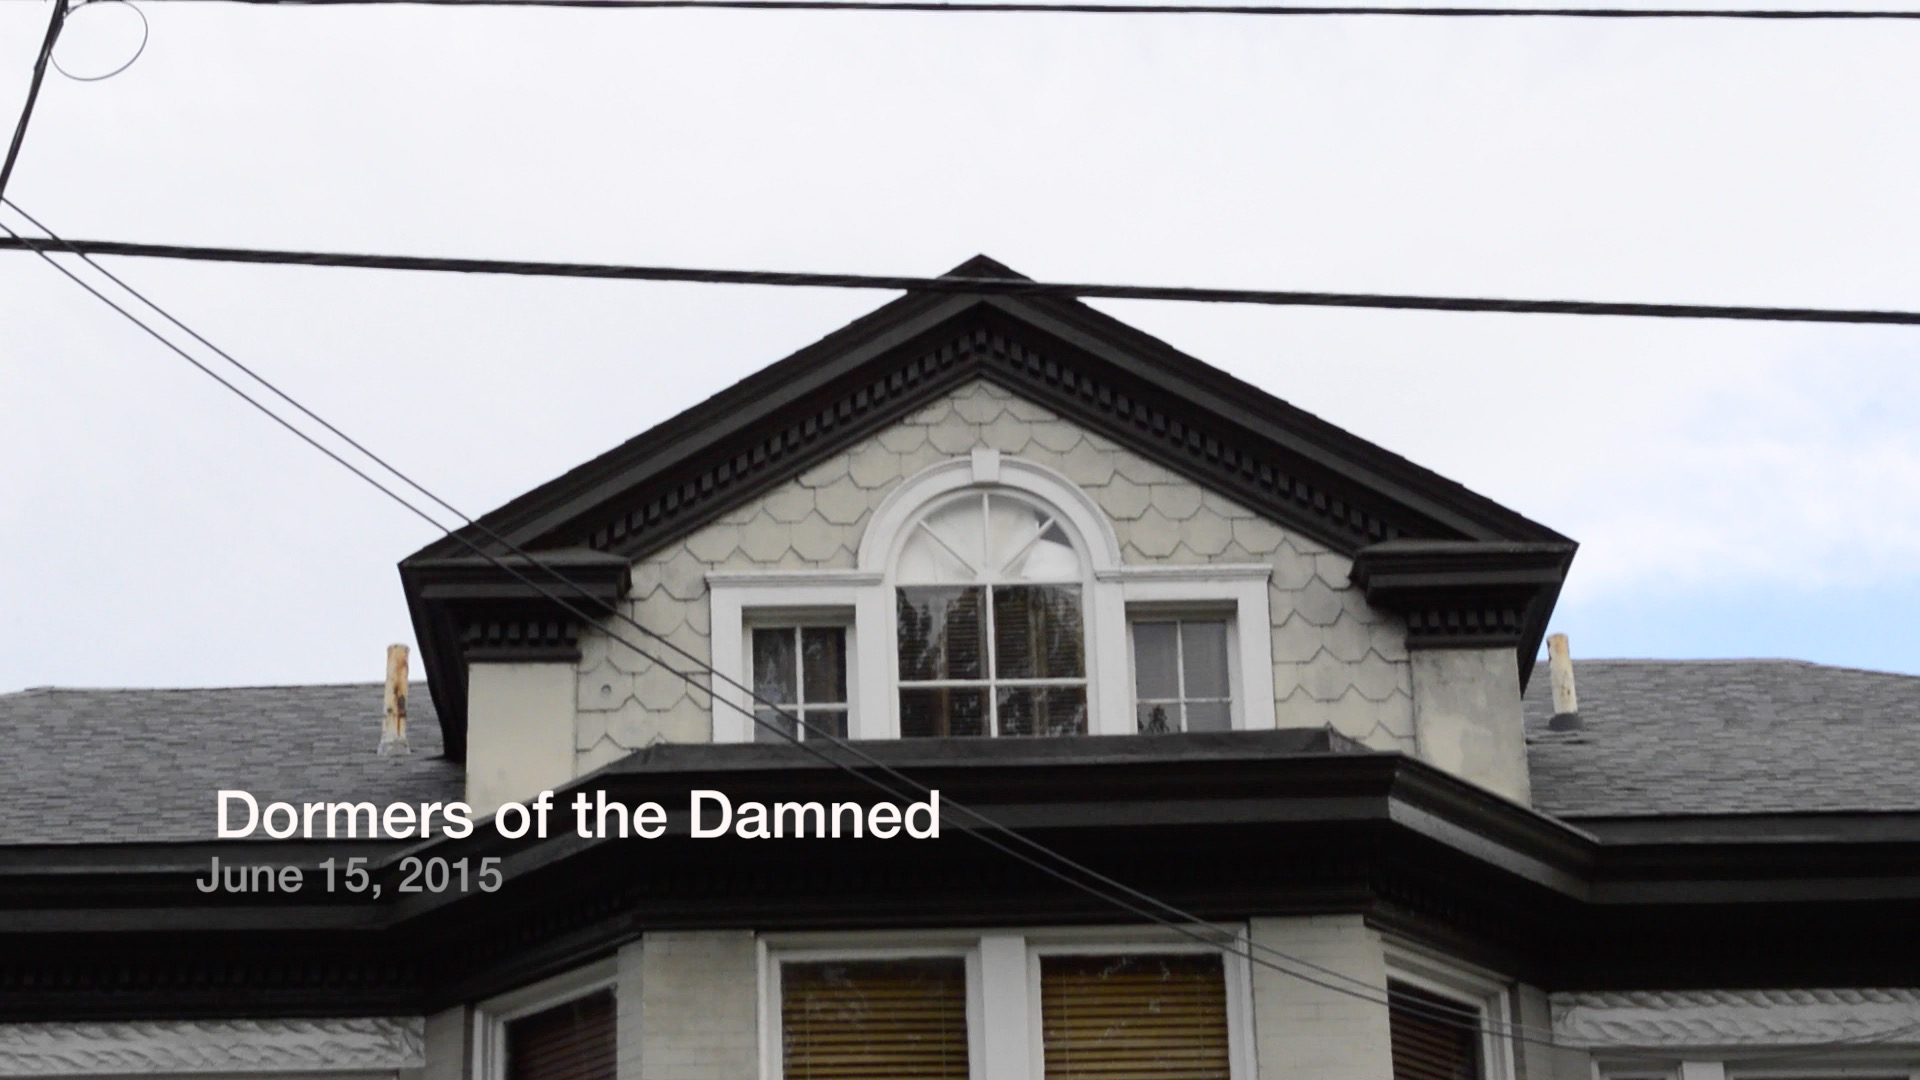 Dormers of the Damned